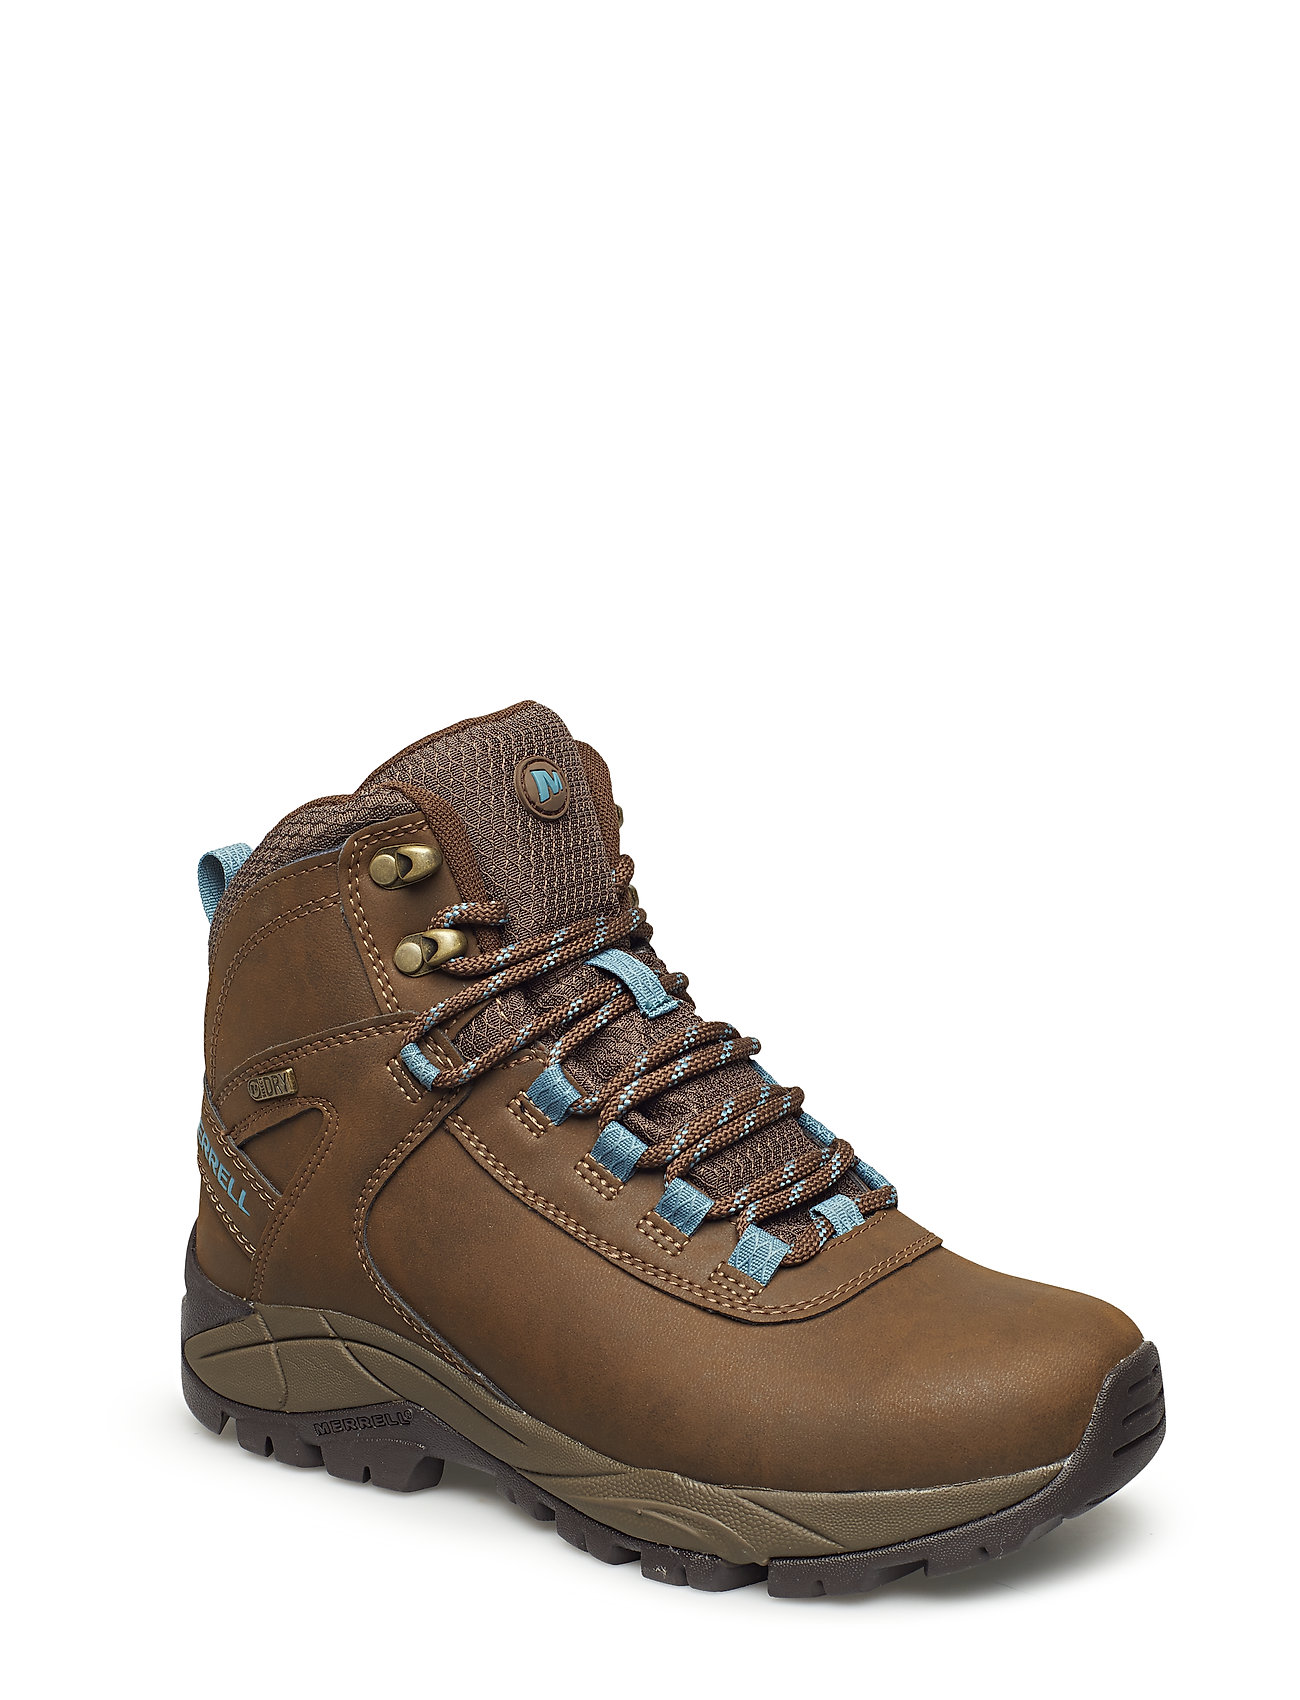 Image of Vego Mid Lthr Wtpf Black/Gloxinia Shoes Sport Shoes Outdoor/hiking Shoes Brun Merrell (3443241319)